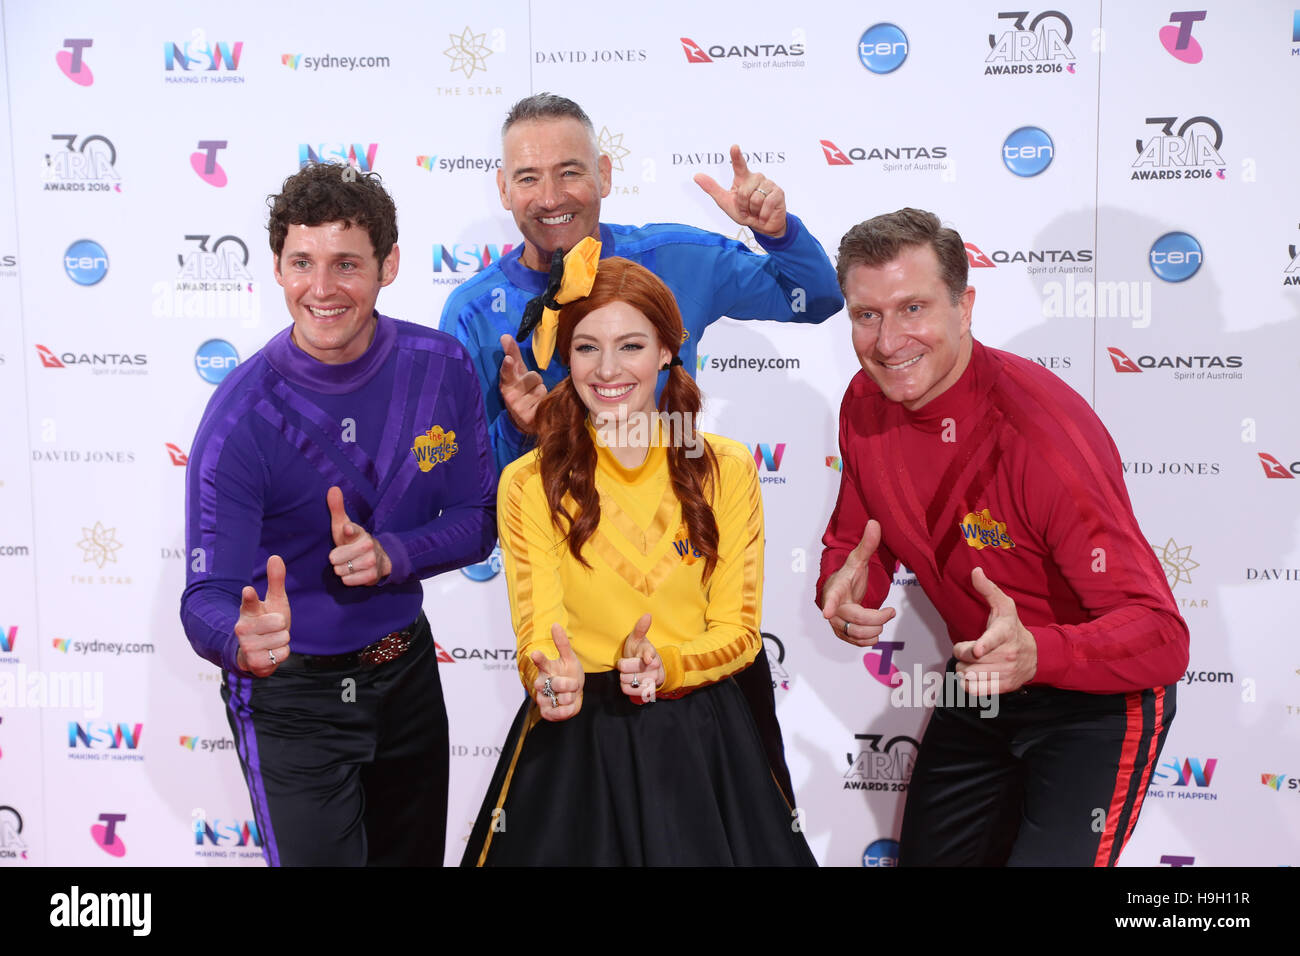 Sydney, Australia. 23 November 2016. The Wiggles arrives on the red carpet for the 30th ARIA Awards at The Star, Stock Photo